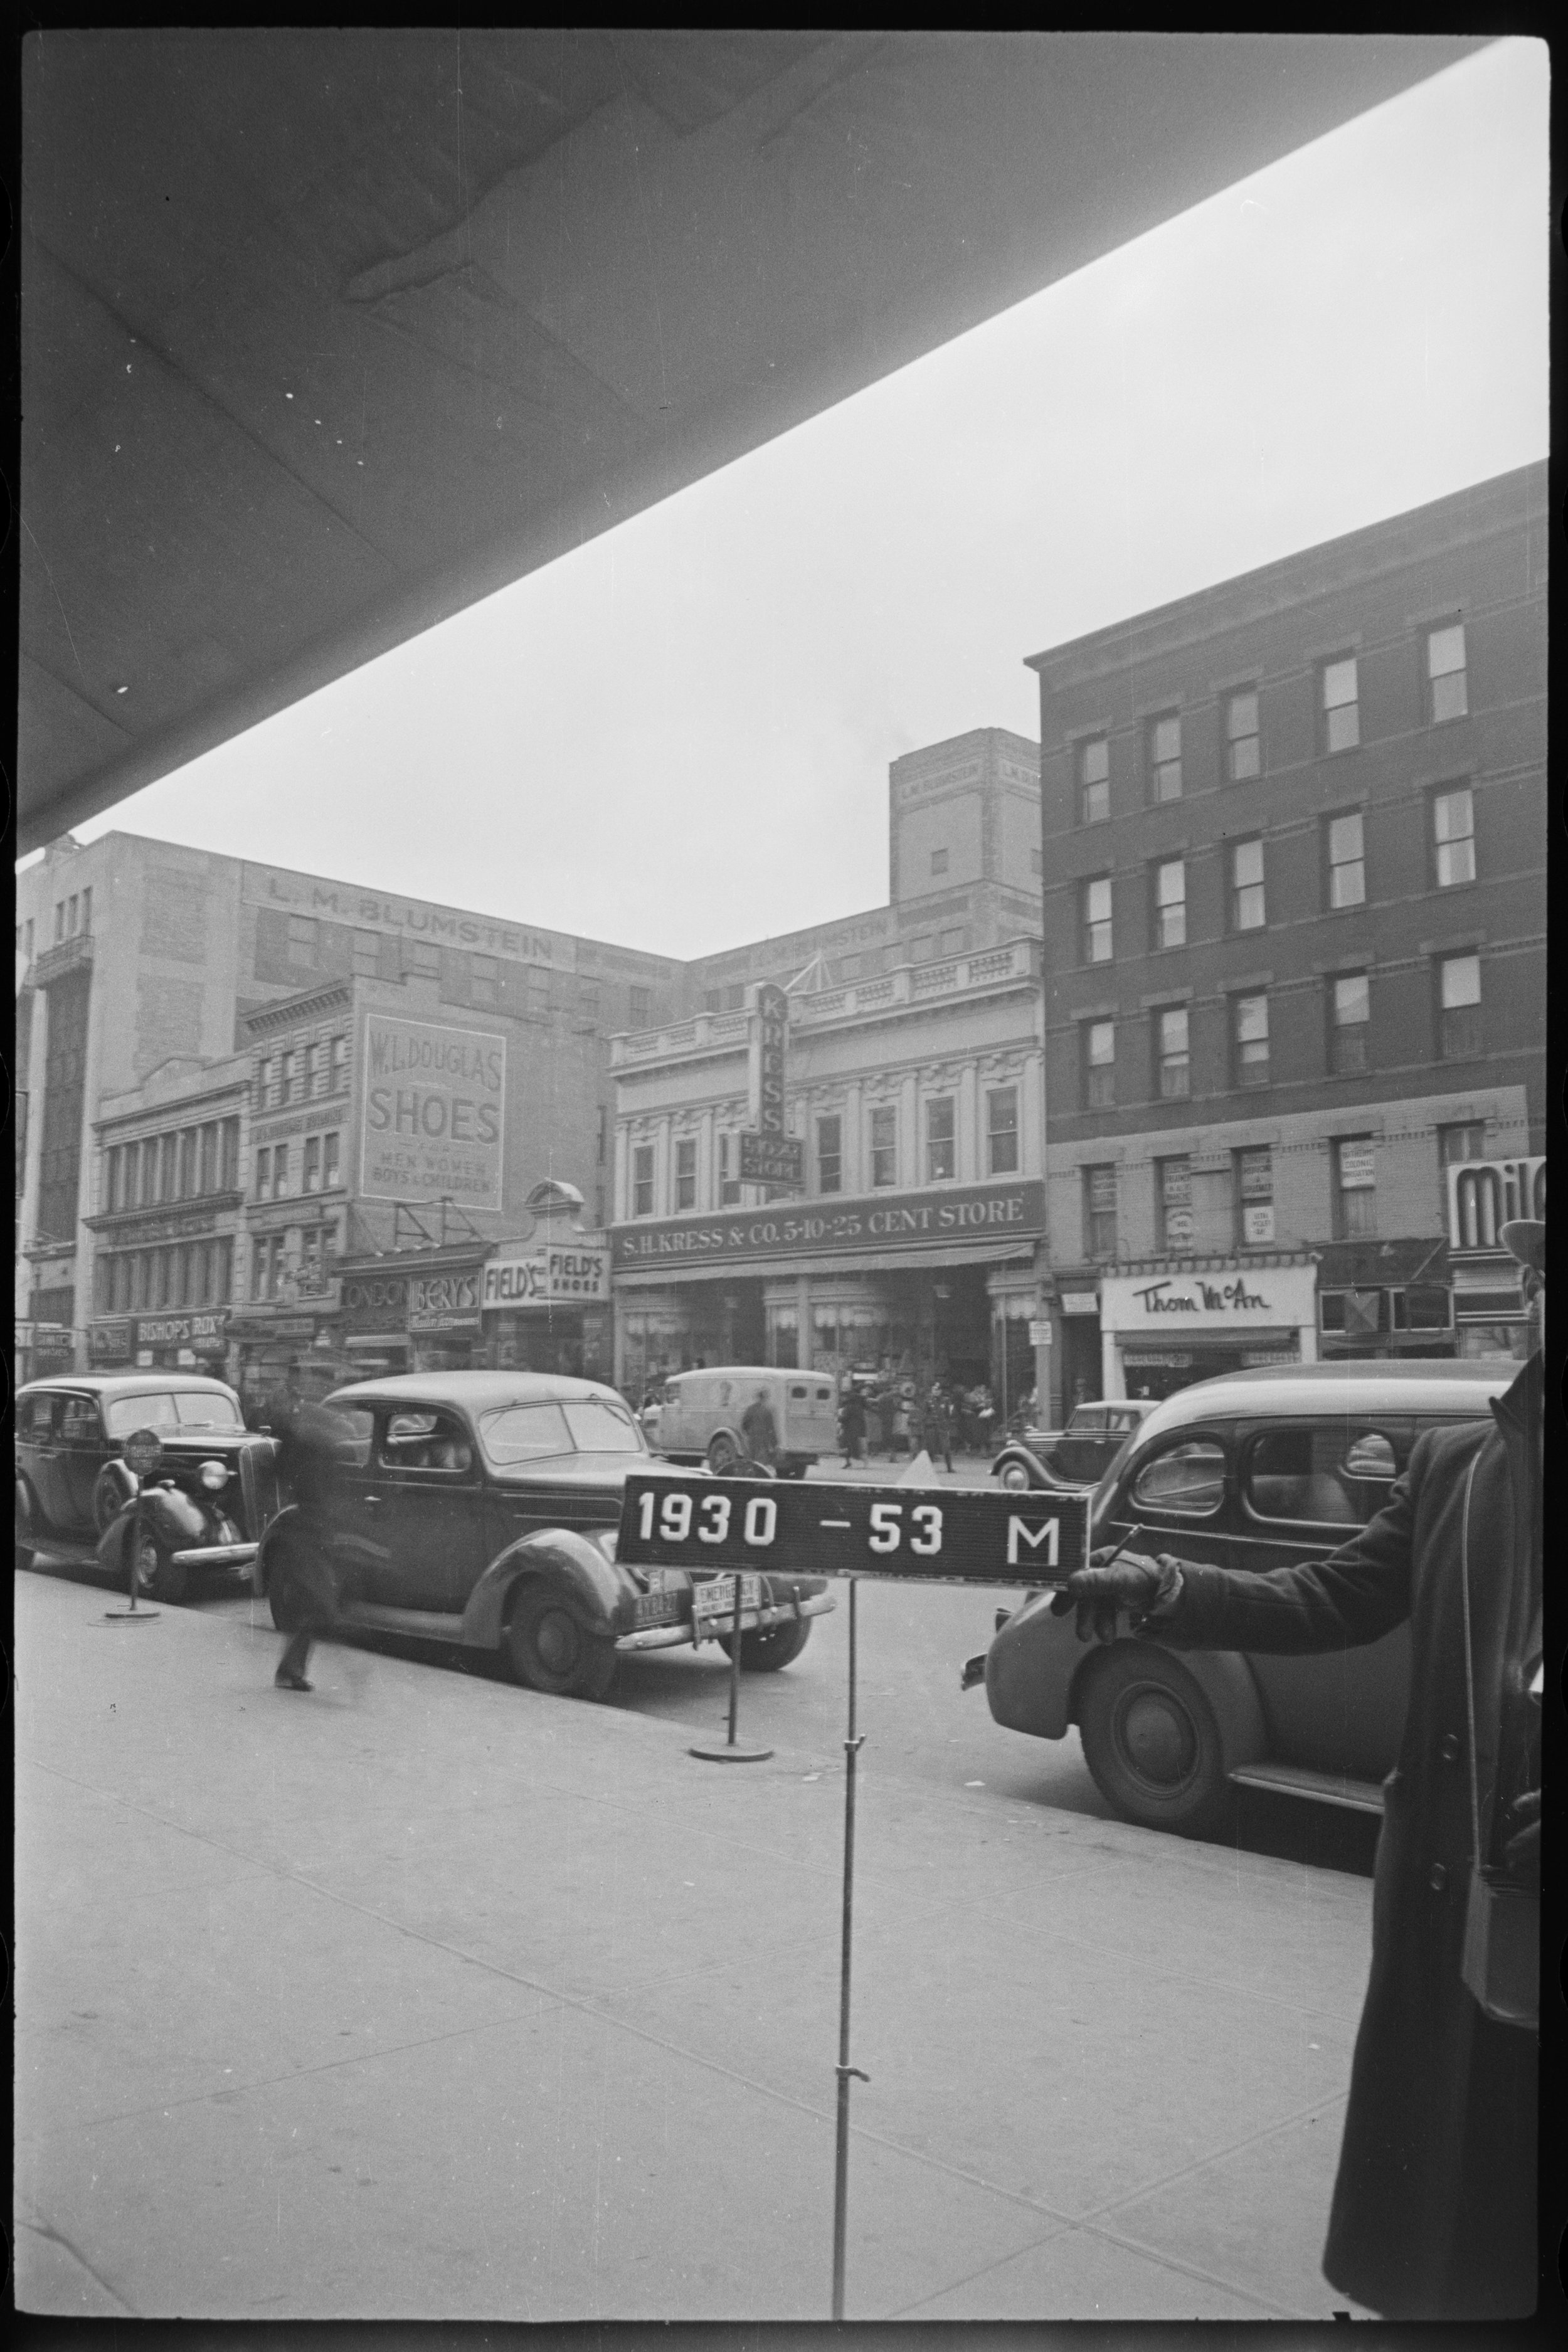 256 West 125 Street, ca. 1939. The 1935 riot was sparked by an incident at this Kress department store. Department of Finance Collection, NYC Municipal Archives.